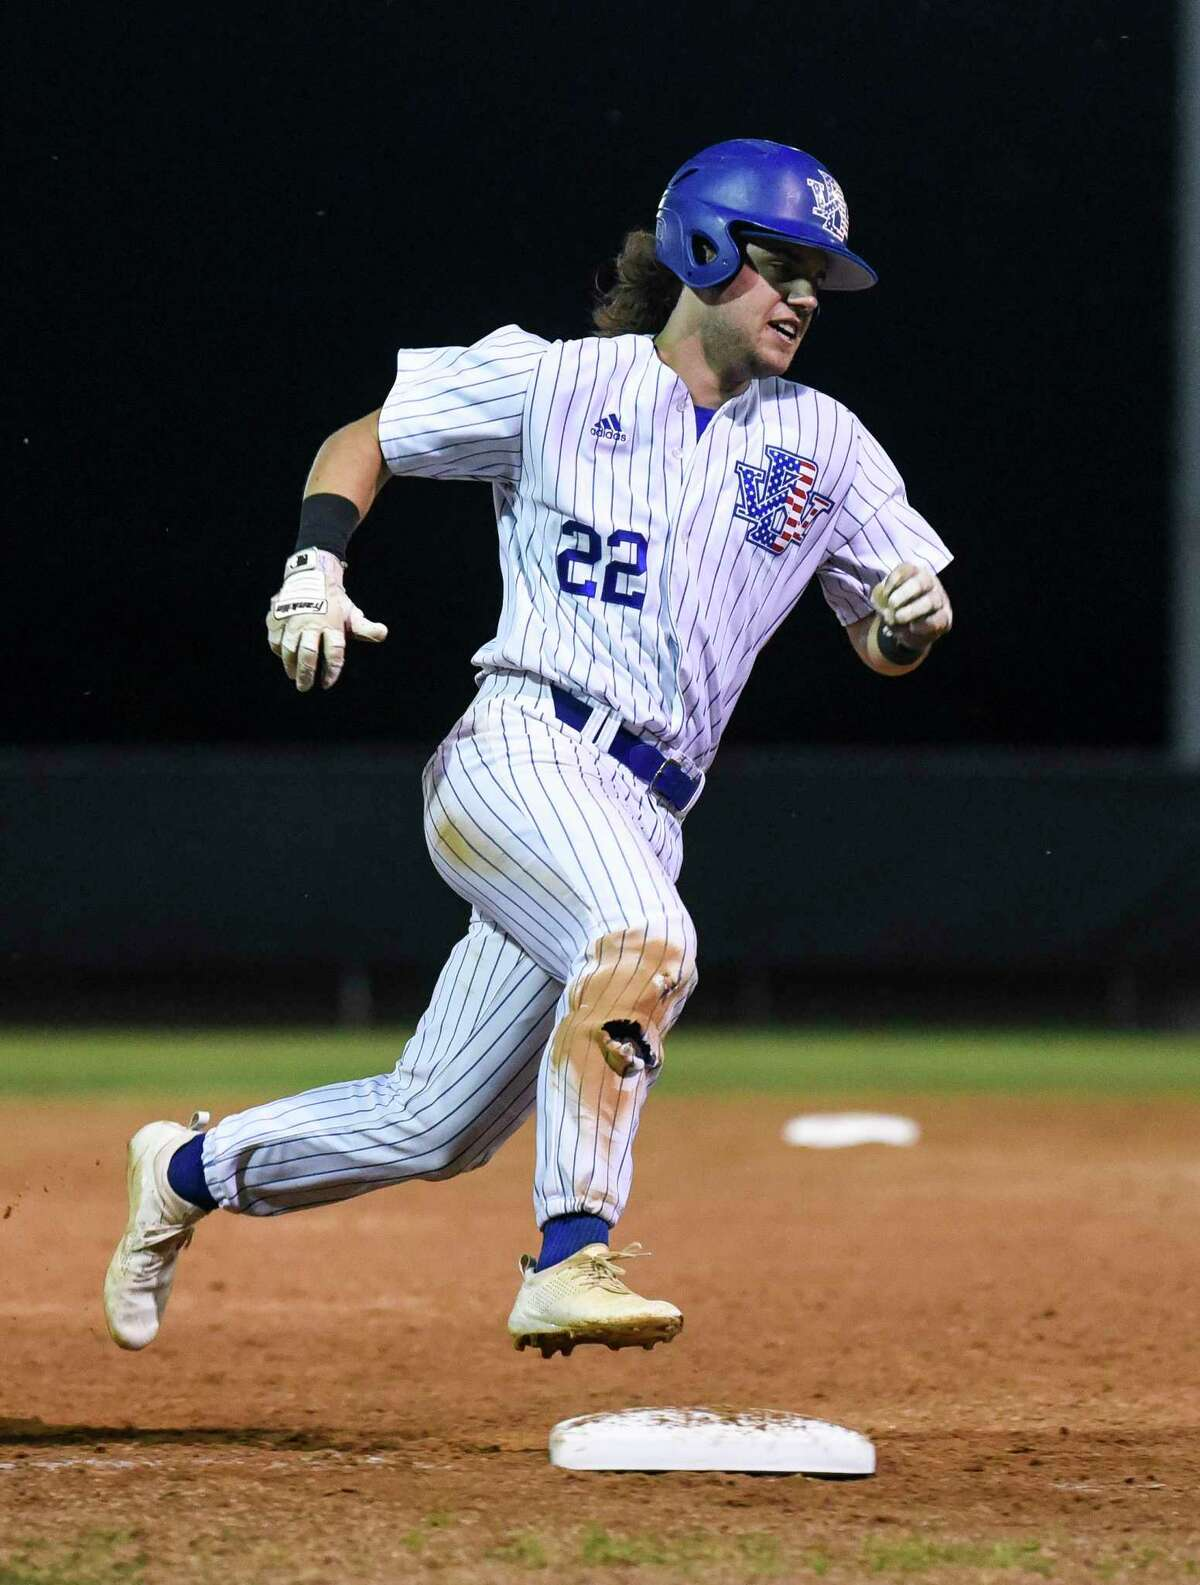 West Brook's Cal Fulton runs pass third base heading home during the game against North Shore at West Brook High School Tuesday night. Photo taken on Tuesday, 04/09/19. Ryan Welch/The Enterprise